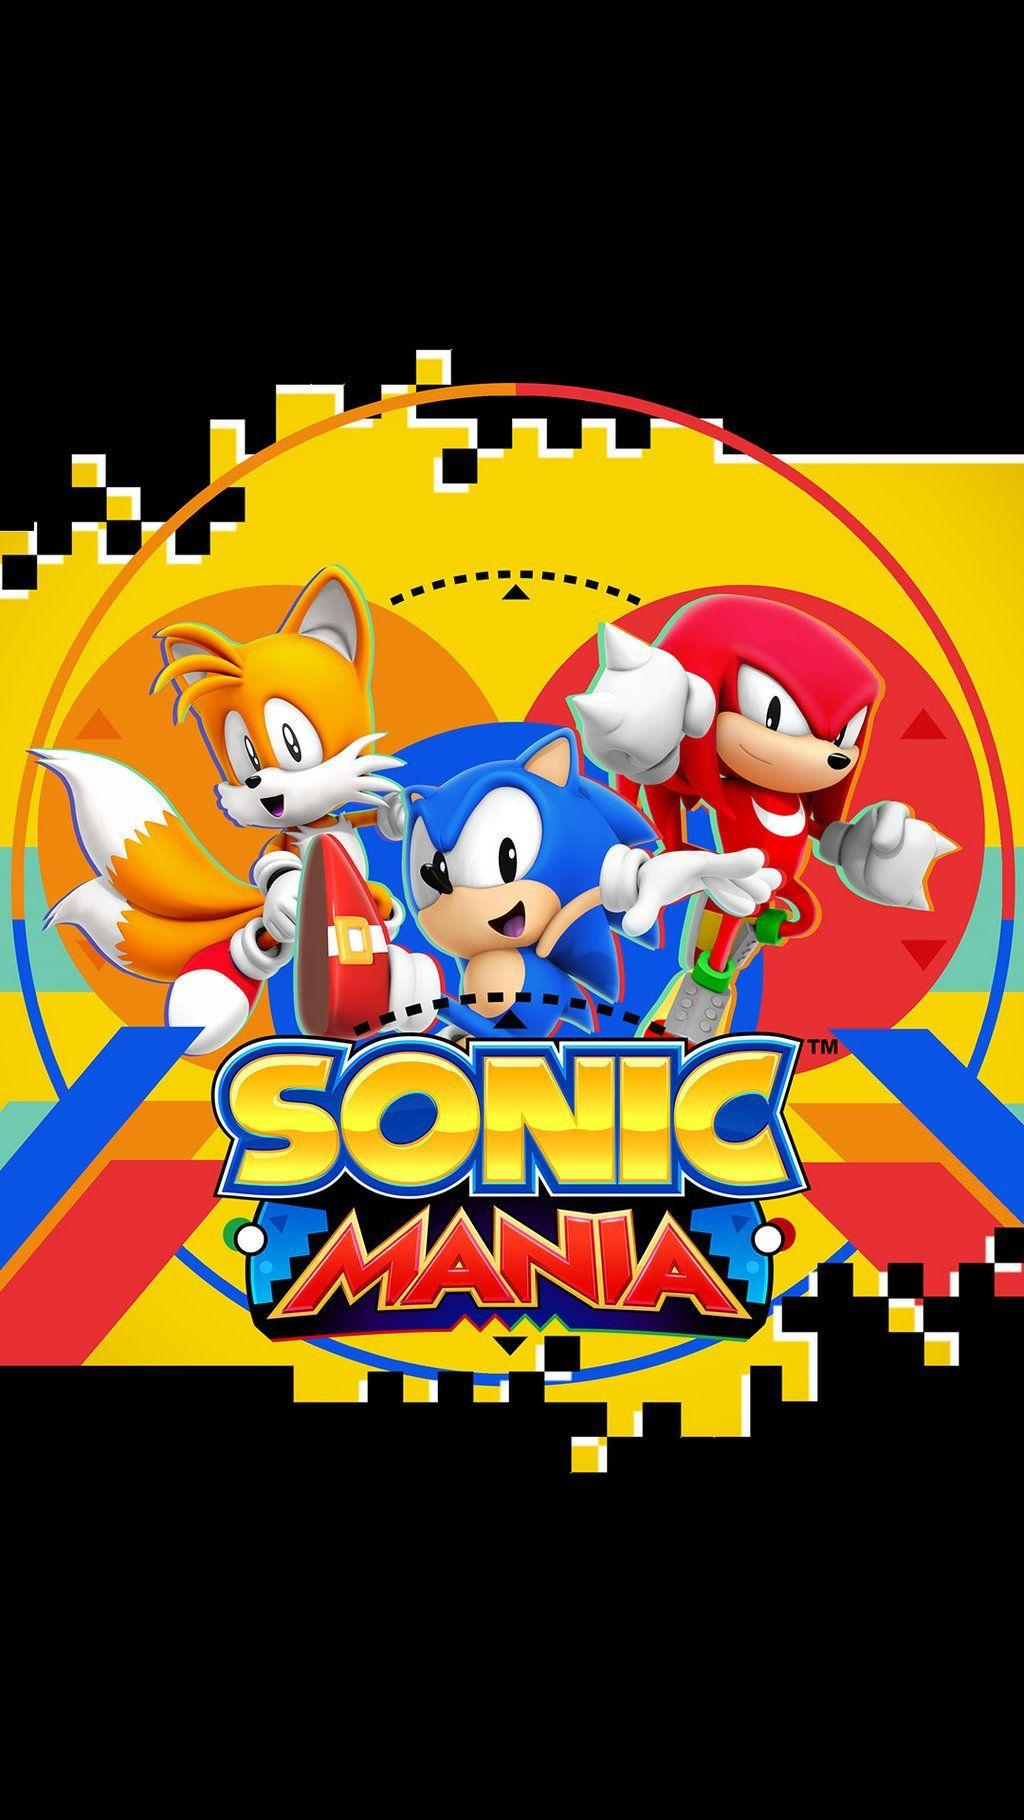 Sonic Mania Wallpapers For Mobile